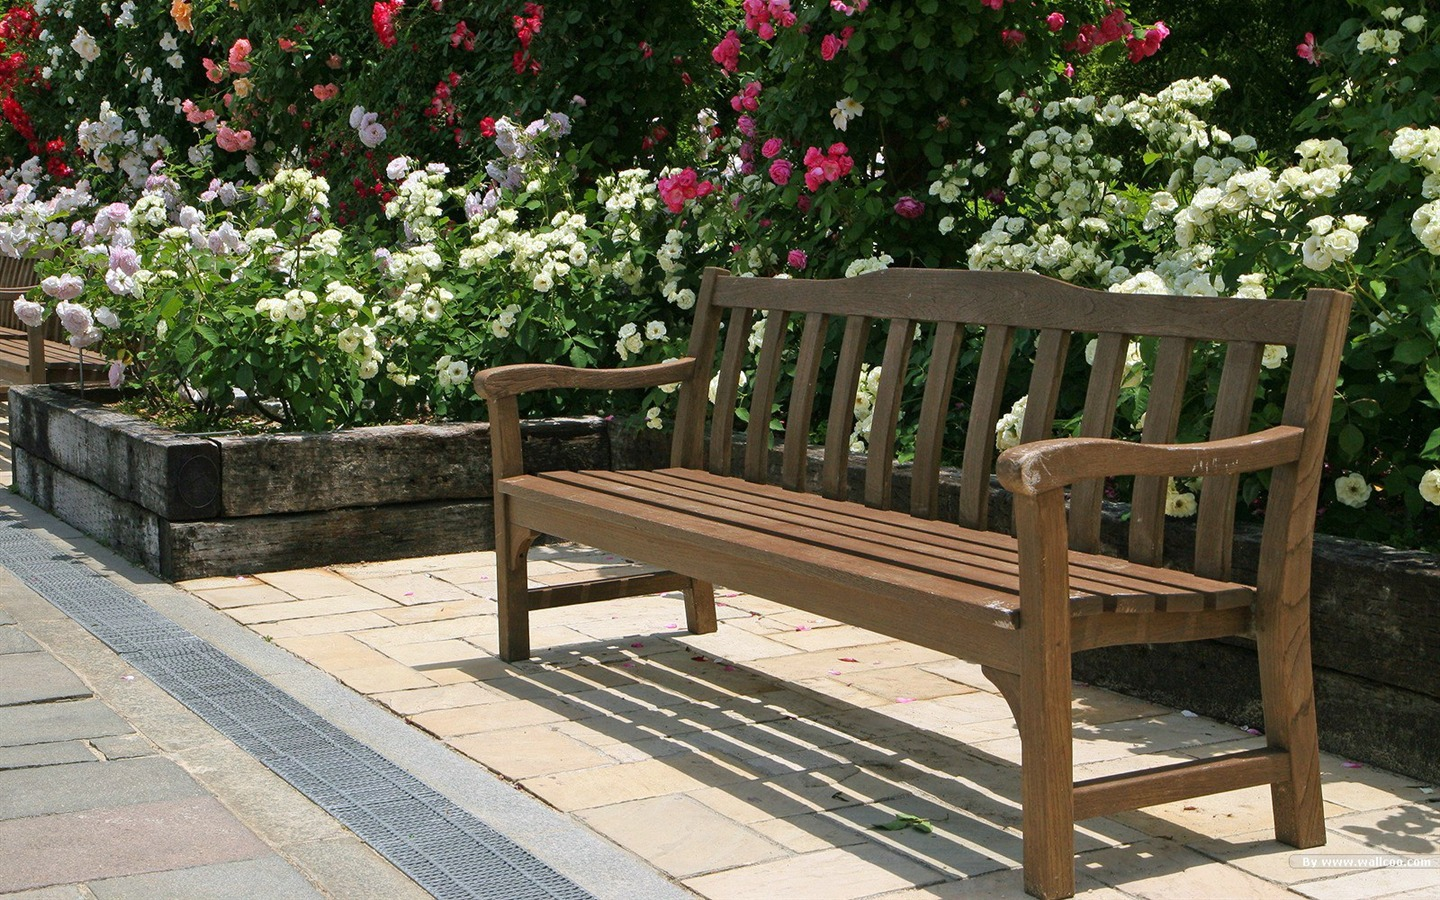 Park Benches Japanese Garden Art Landscape Wallpaper 1440x900 Download